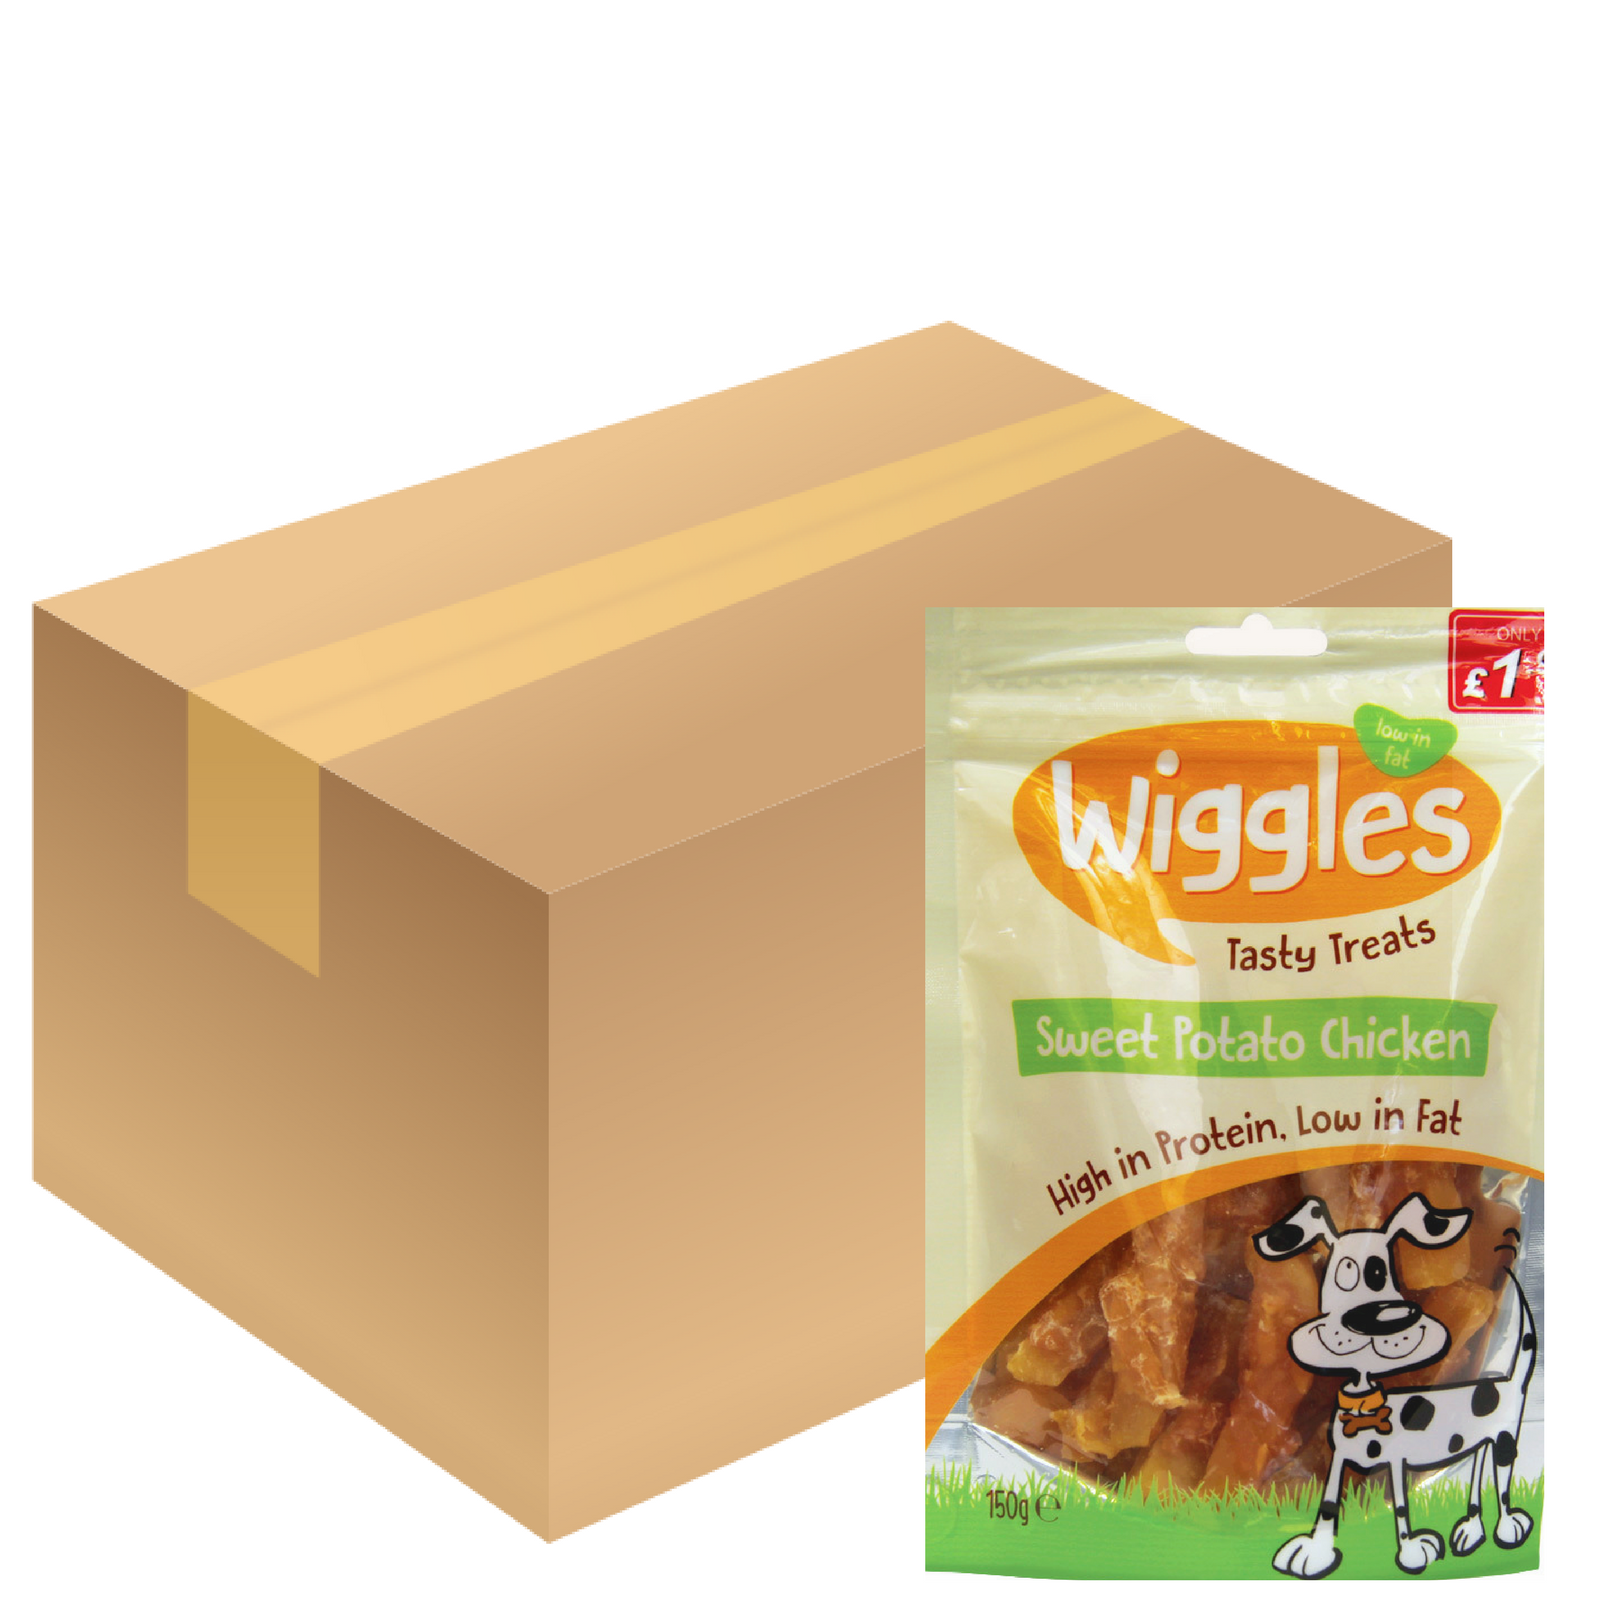 Wiggles Sweet Potato Chicken Jerky Dog Treats Treats Treats Healthy Natural 150g-24 Bags Bulk bd5b73